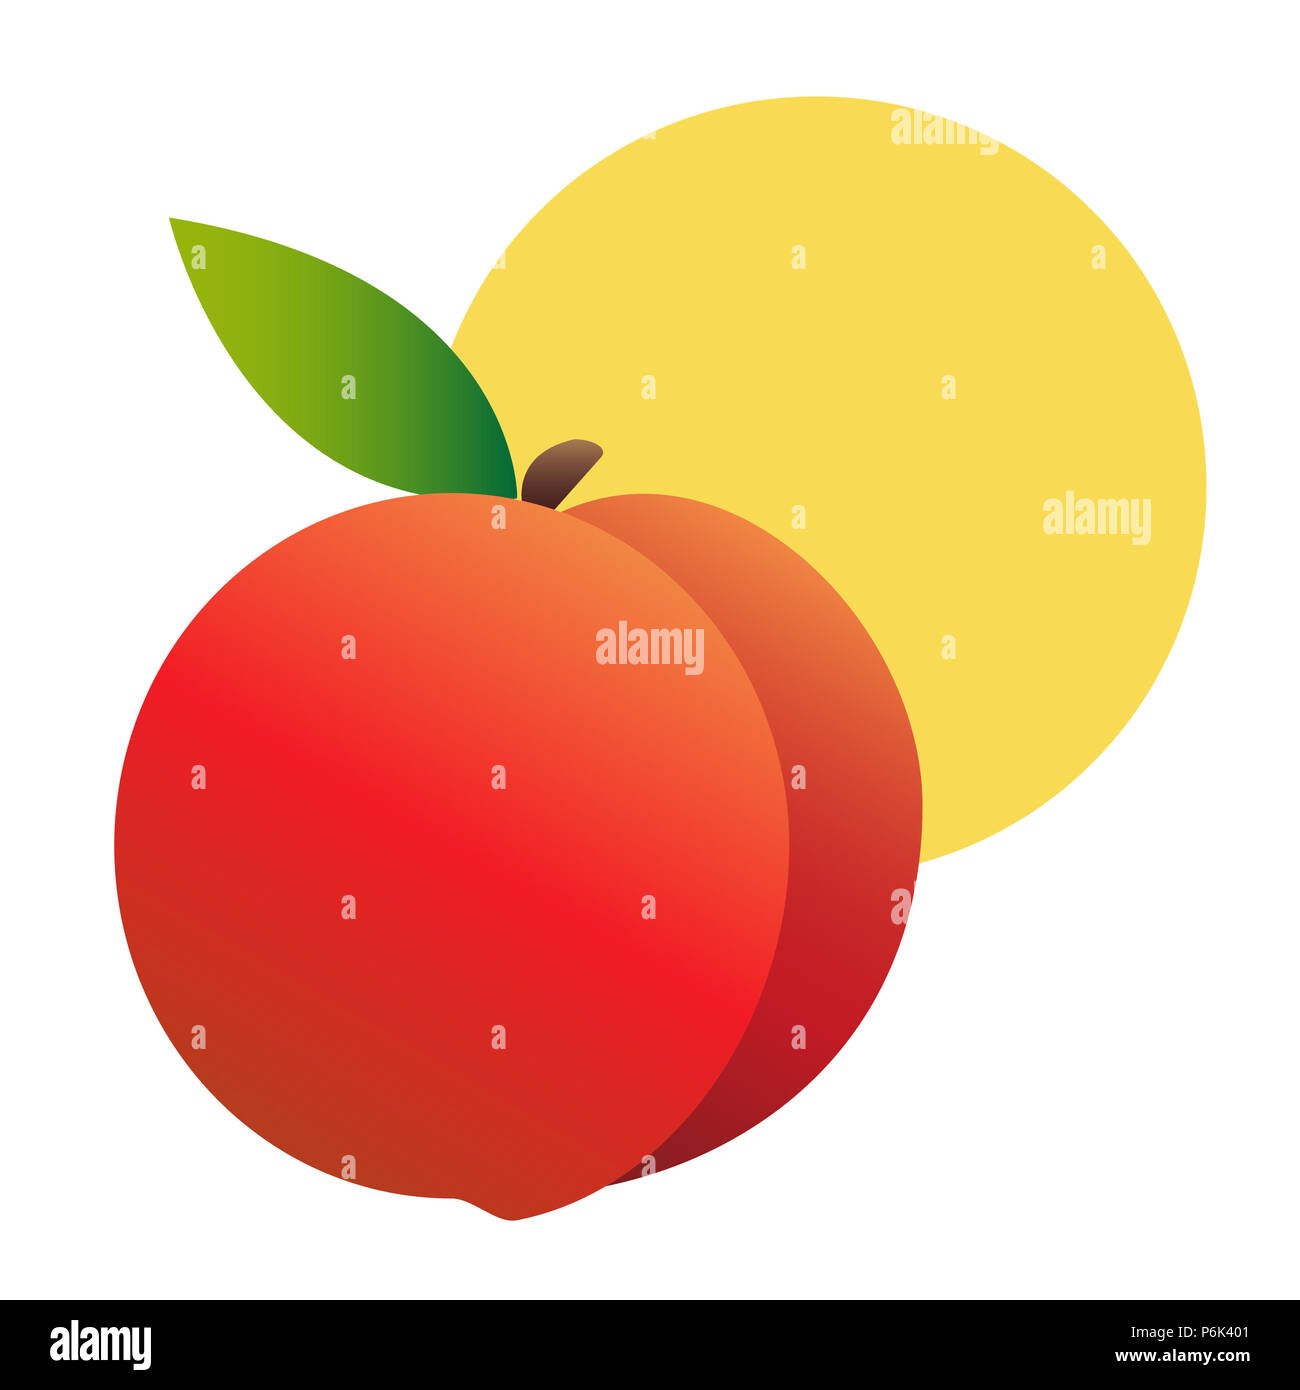 Illustration of a realistic peach against a yellow sun. White background. Summery, fresh, modern. - Stock Image